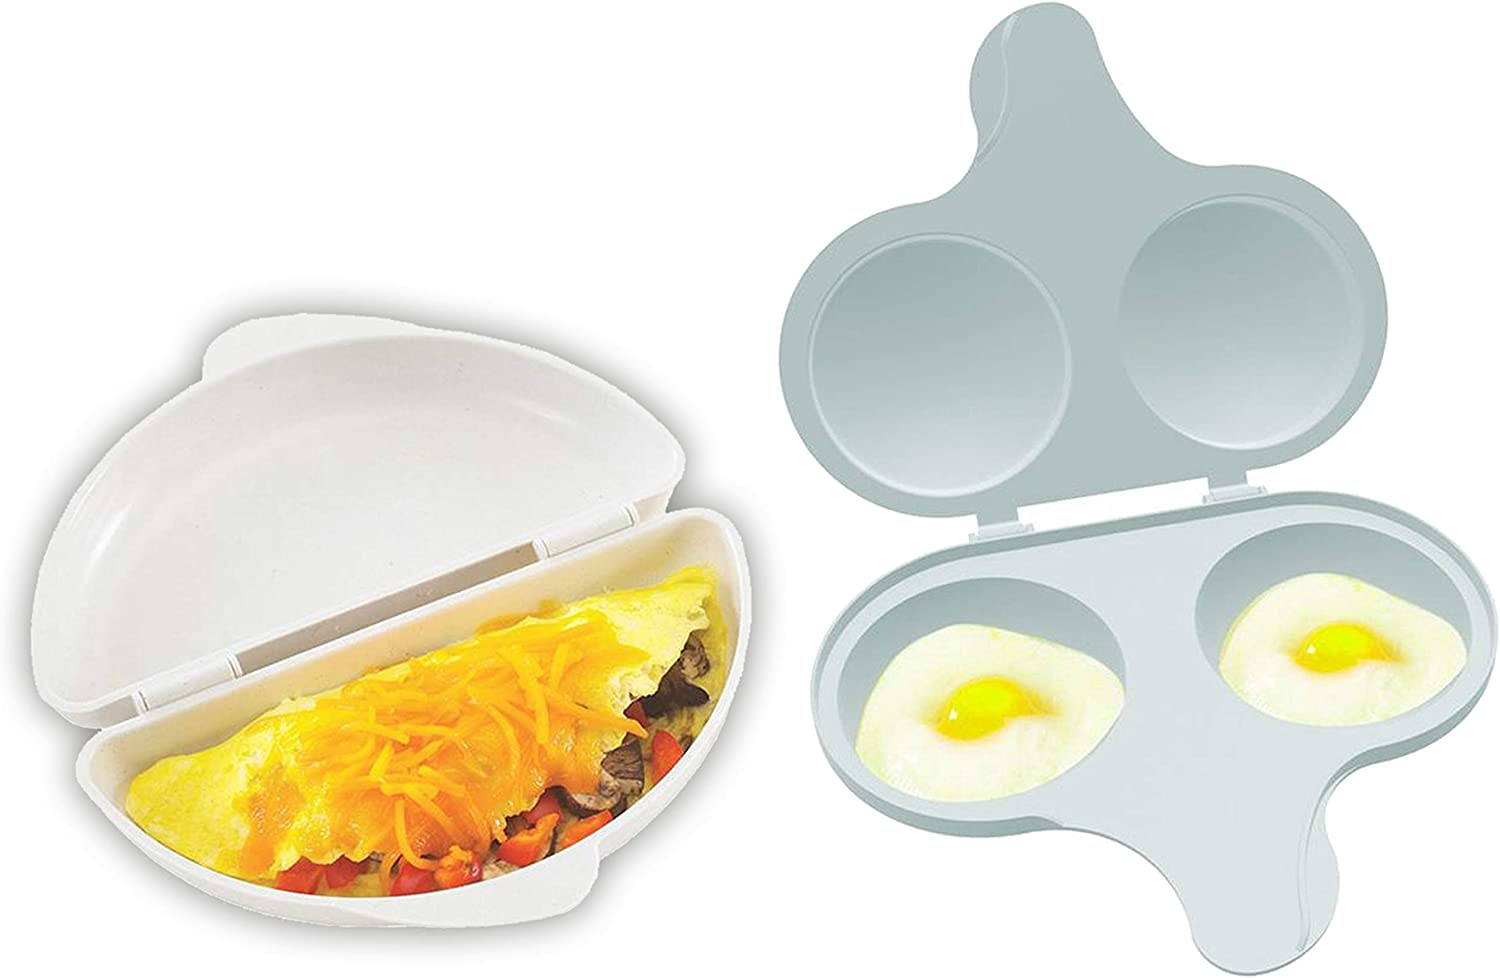 Nordic Ware 697818 Microwave 2 Cavity Egg Poacher, White